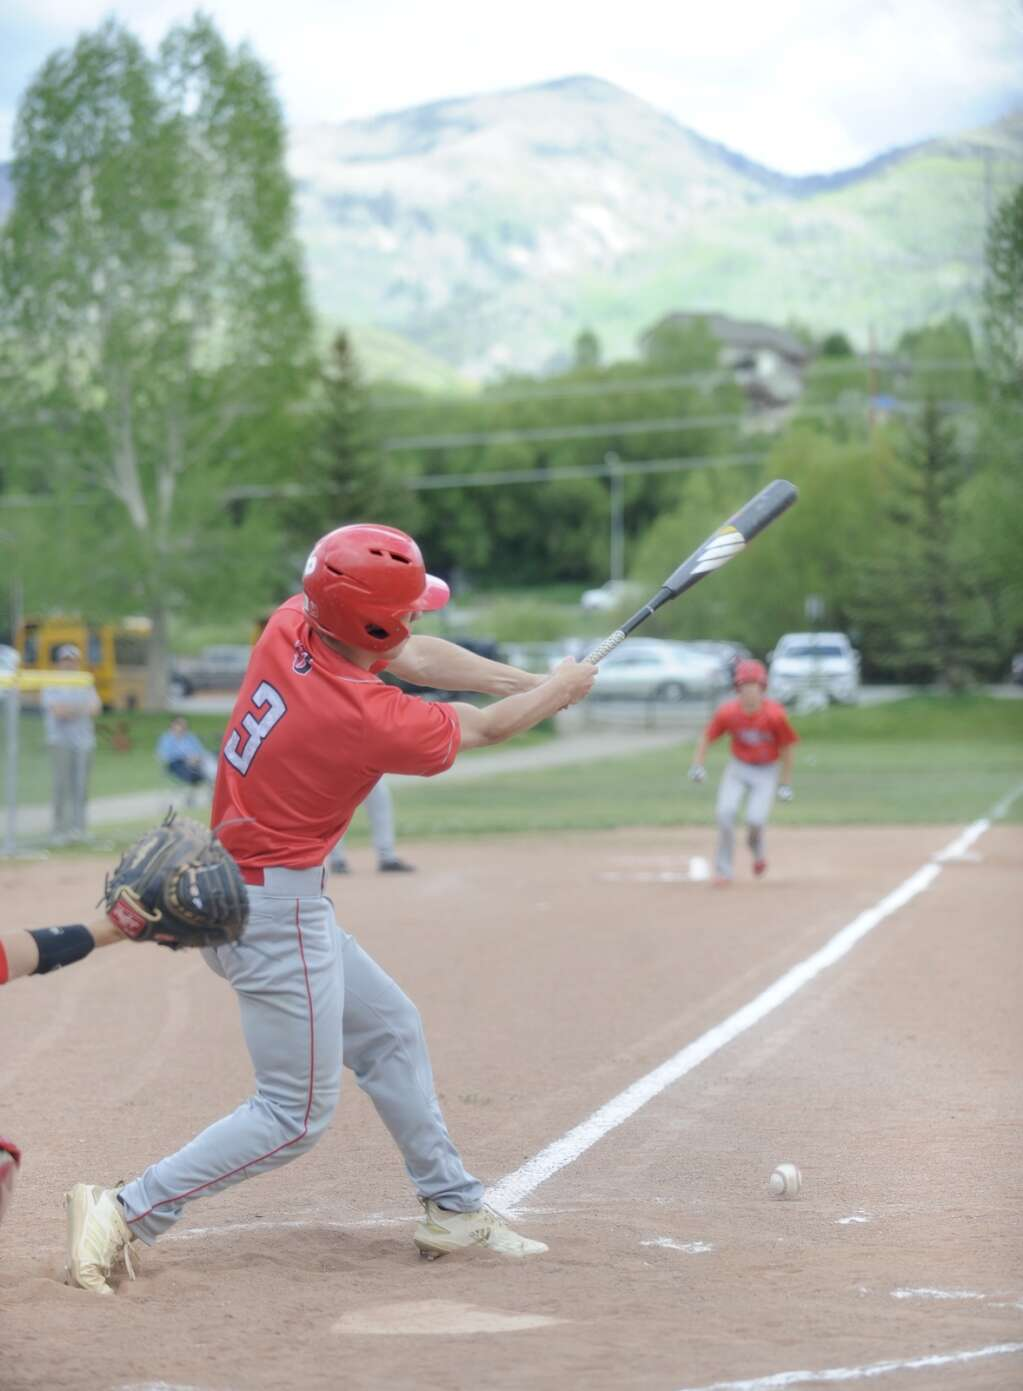 Glenwood Springs baseball player Braxton Mims swings at a pitch during a game at Steamboat Springs on Tuesday evening.